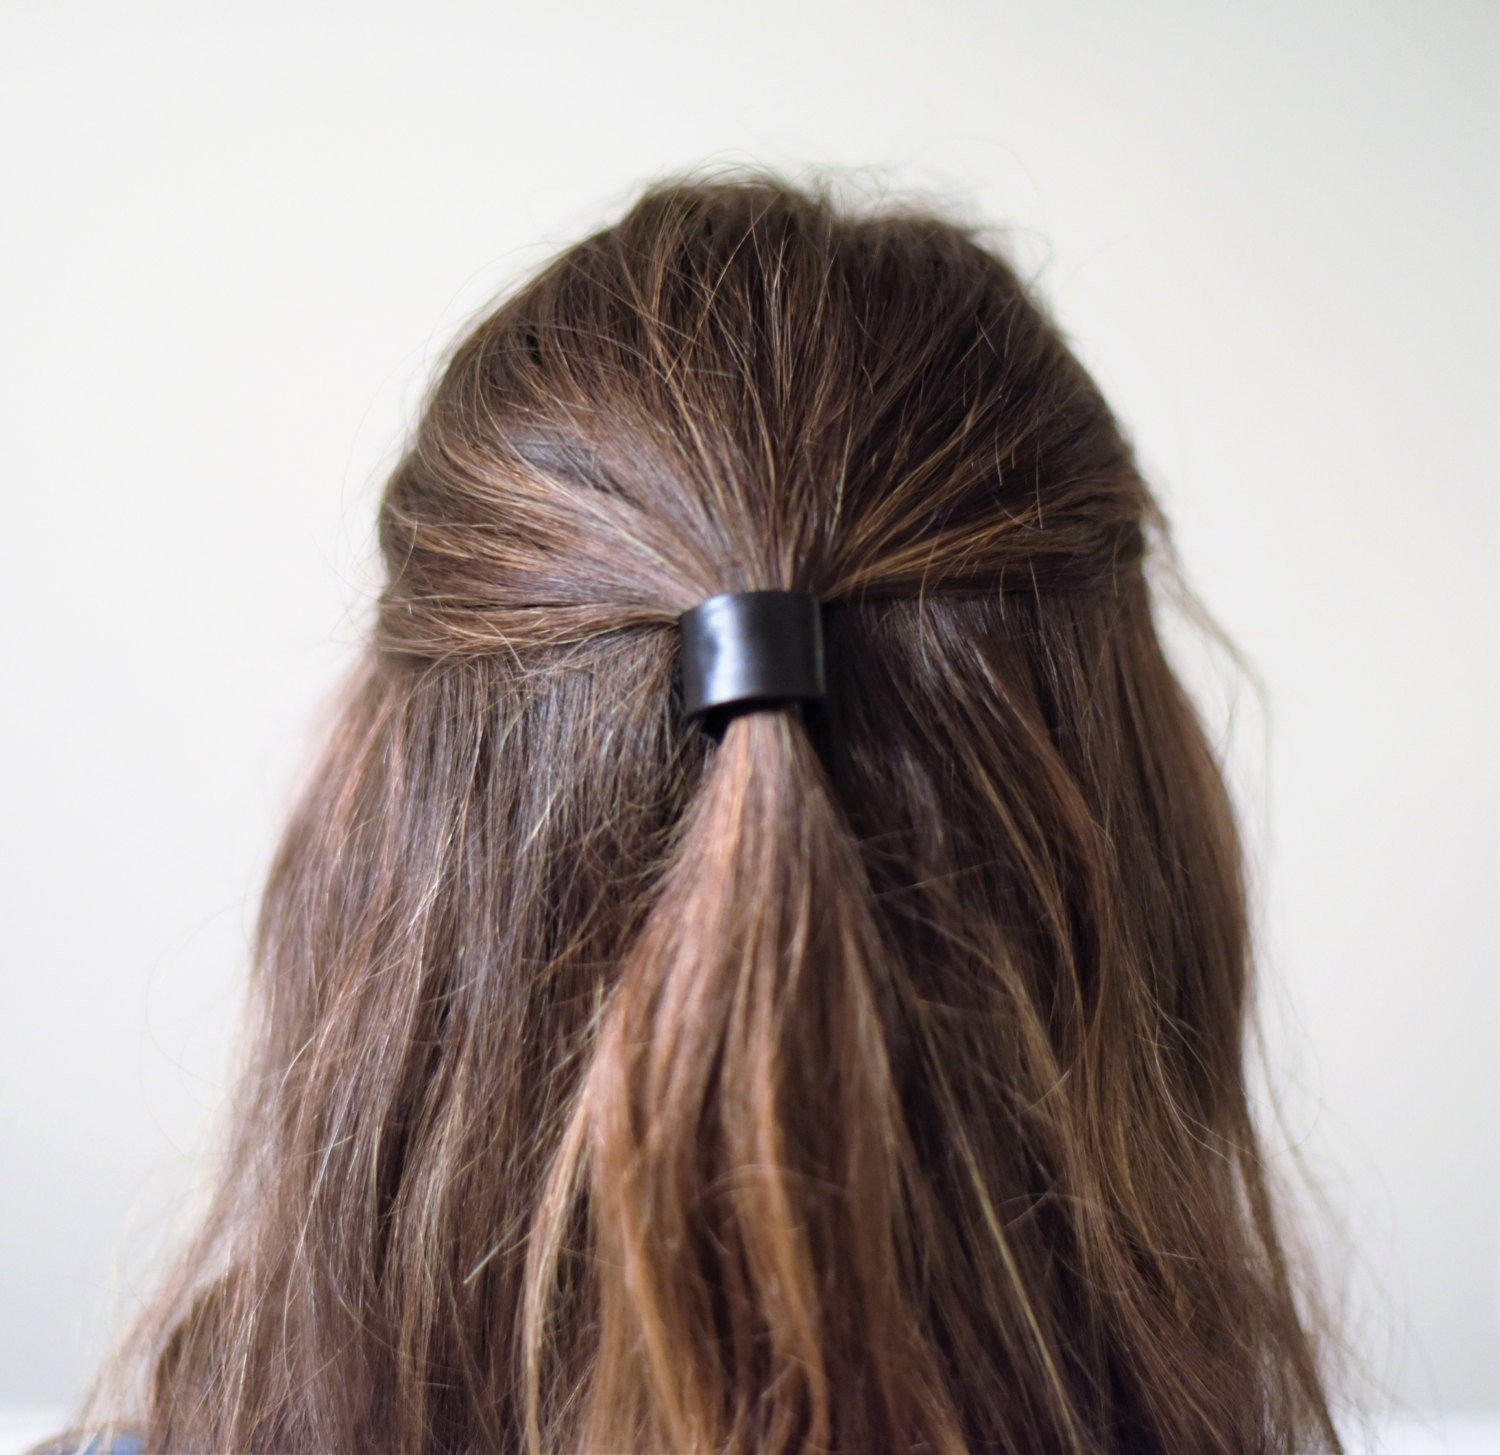 Popular ponytail hair cuff of Good Quality and at Affordable Prices You can Buy on AliExpress. We believe in helping you find the product that is right for you.